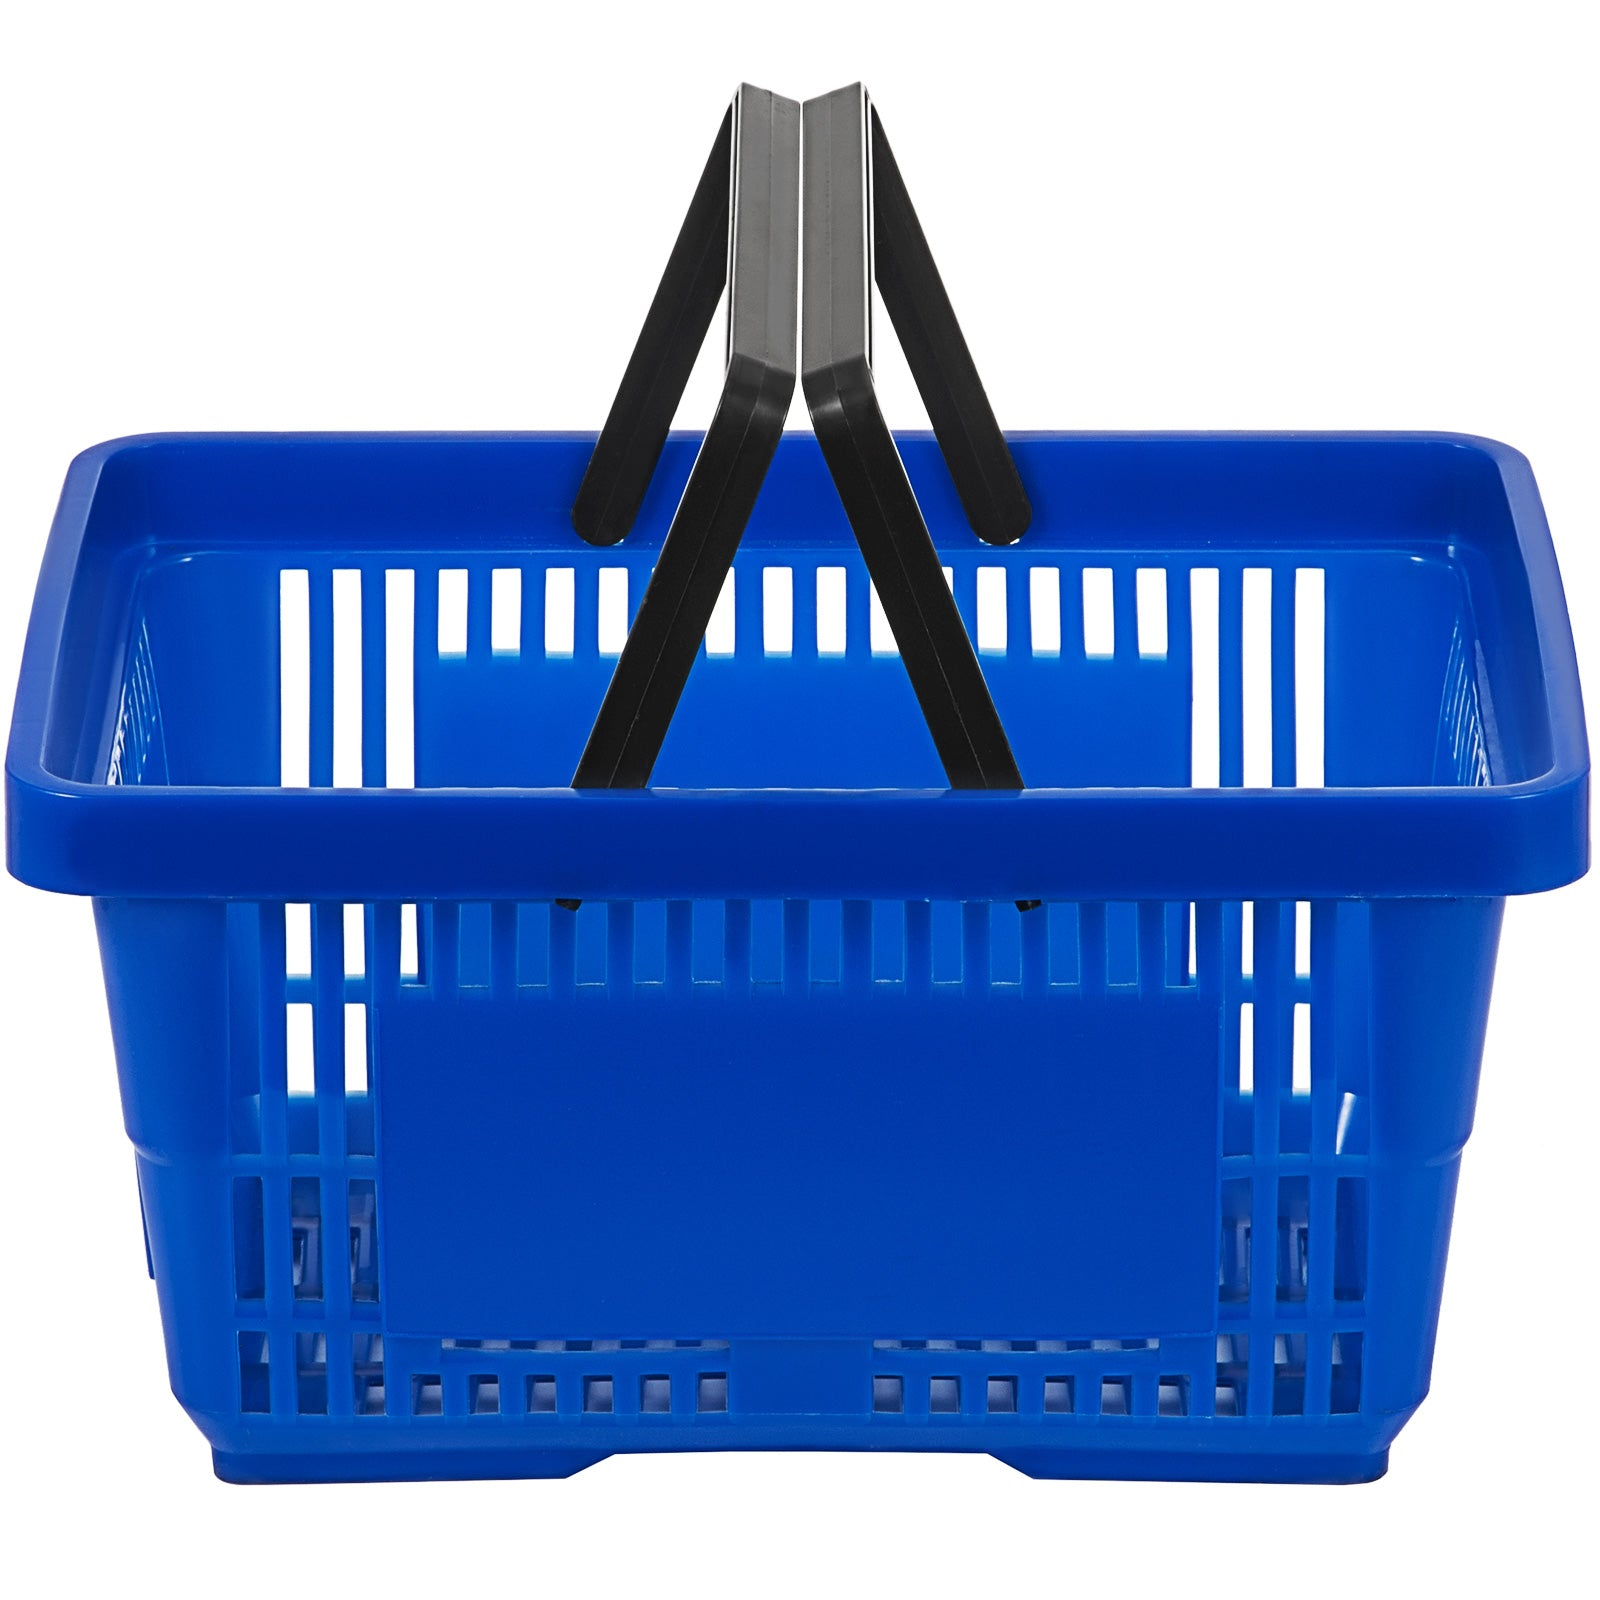 Blue Plastic Shopping Basket Pack Of 12 Handled Baskets